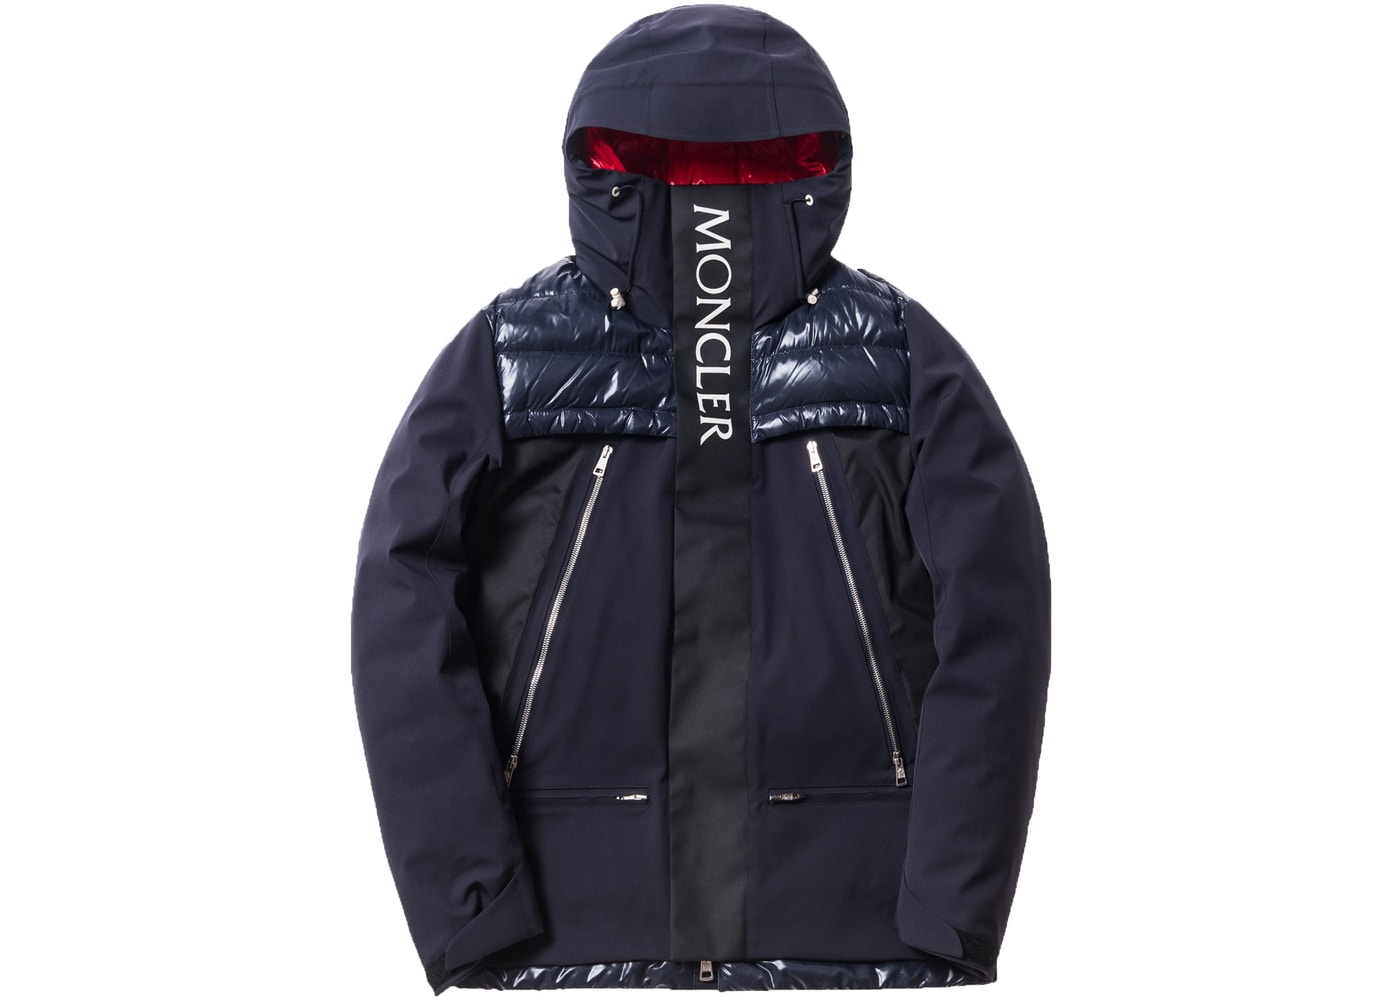 c17a1adb4f5 Kith Moncler Parrachee Long Down Jacket Navy - FW17